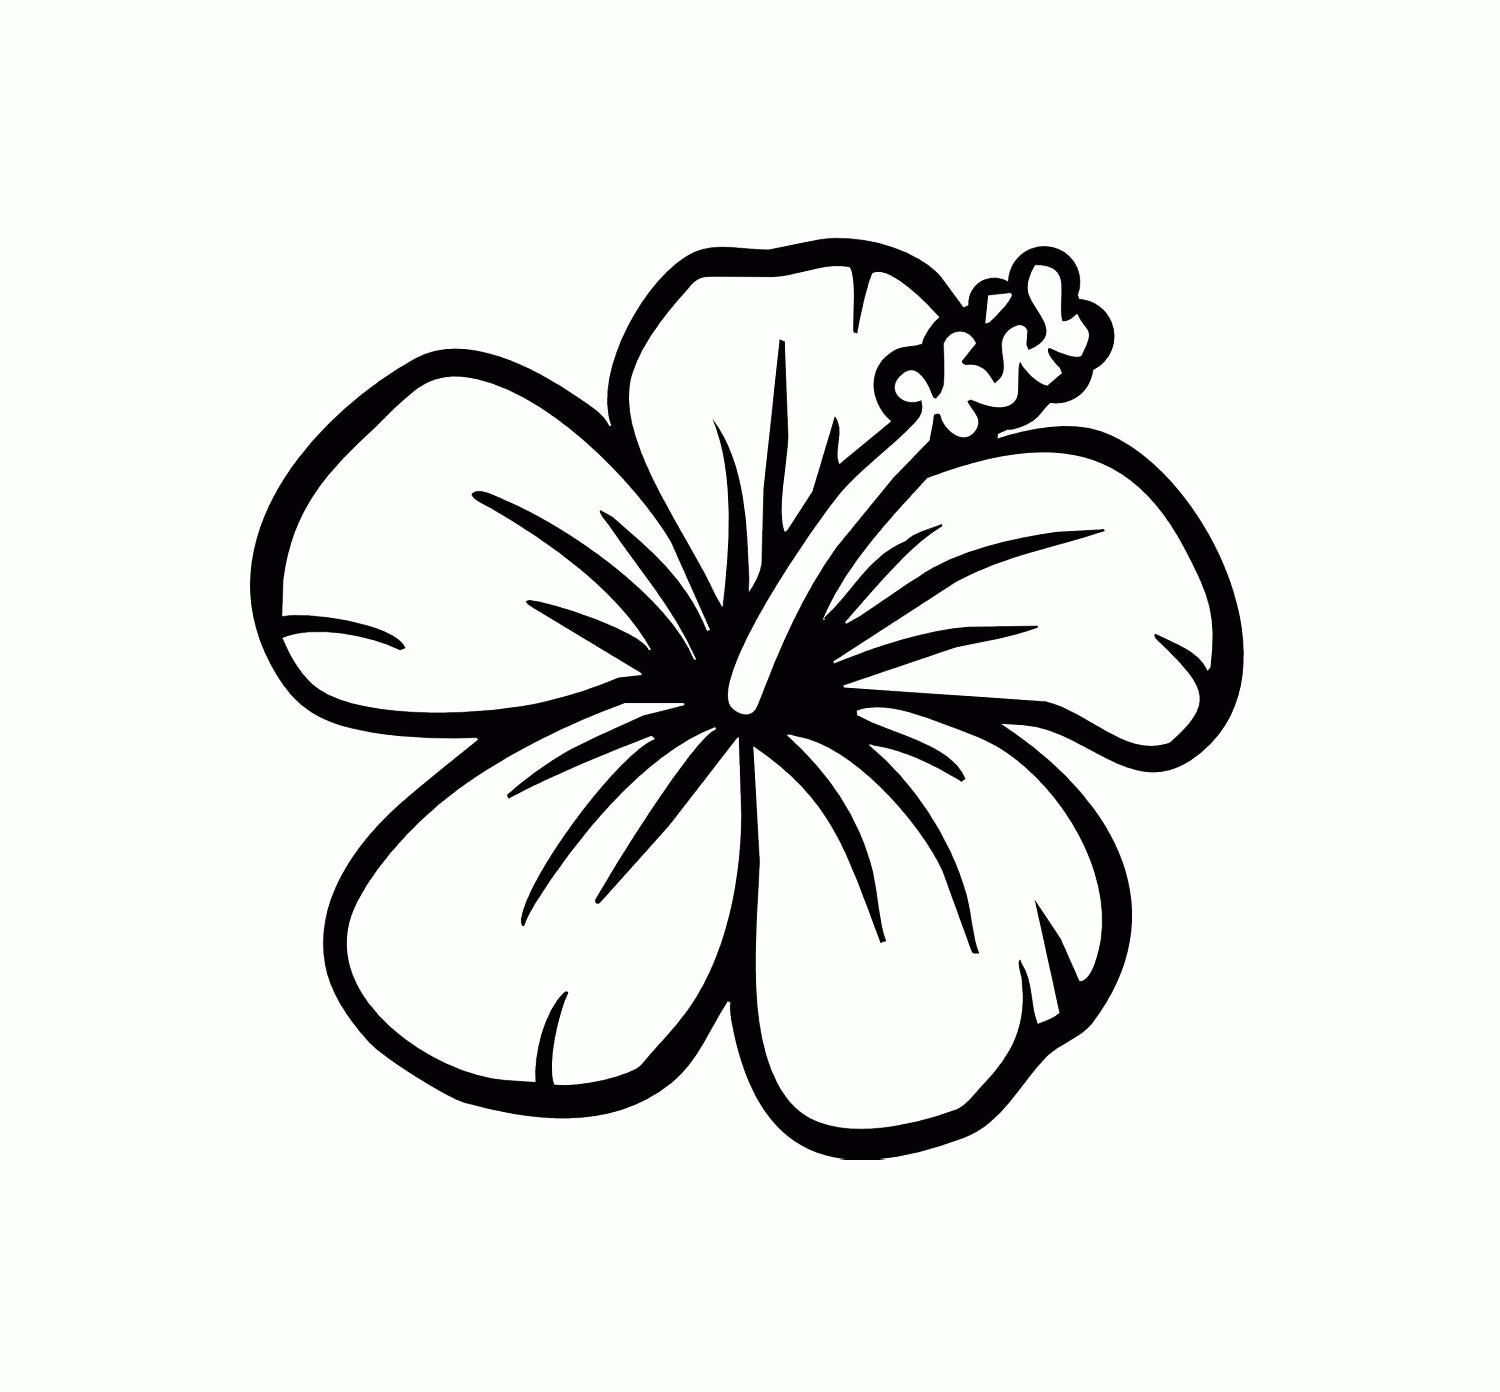 21 Brilliant Picture Of Flowers Coloring Pages Entitlementtrap Com Hibiscus Flower Drawing Printable Flower Coloring Pages Flower Coloring Pages